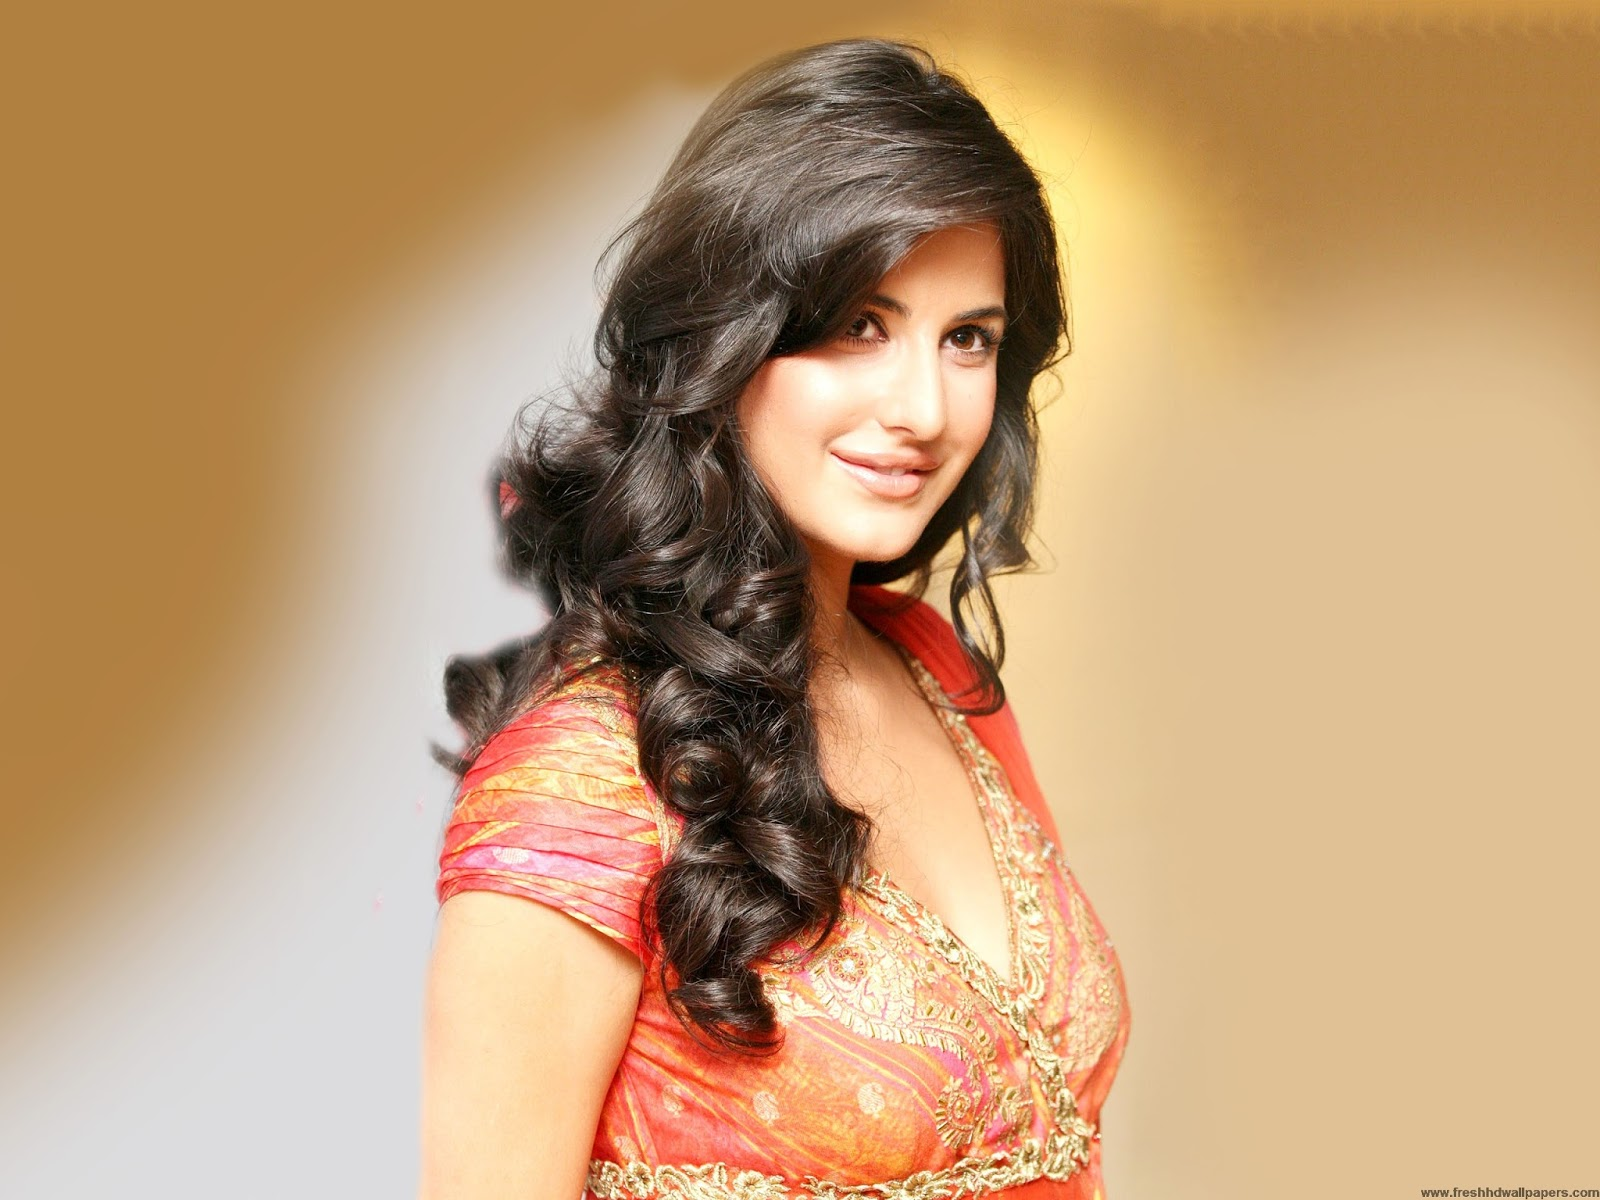 katrina kaif - free hd wallpapers | free wallpaper